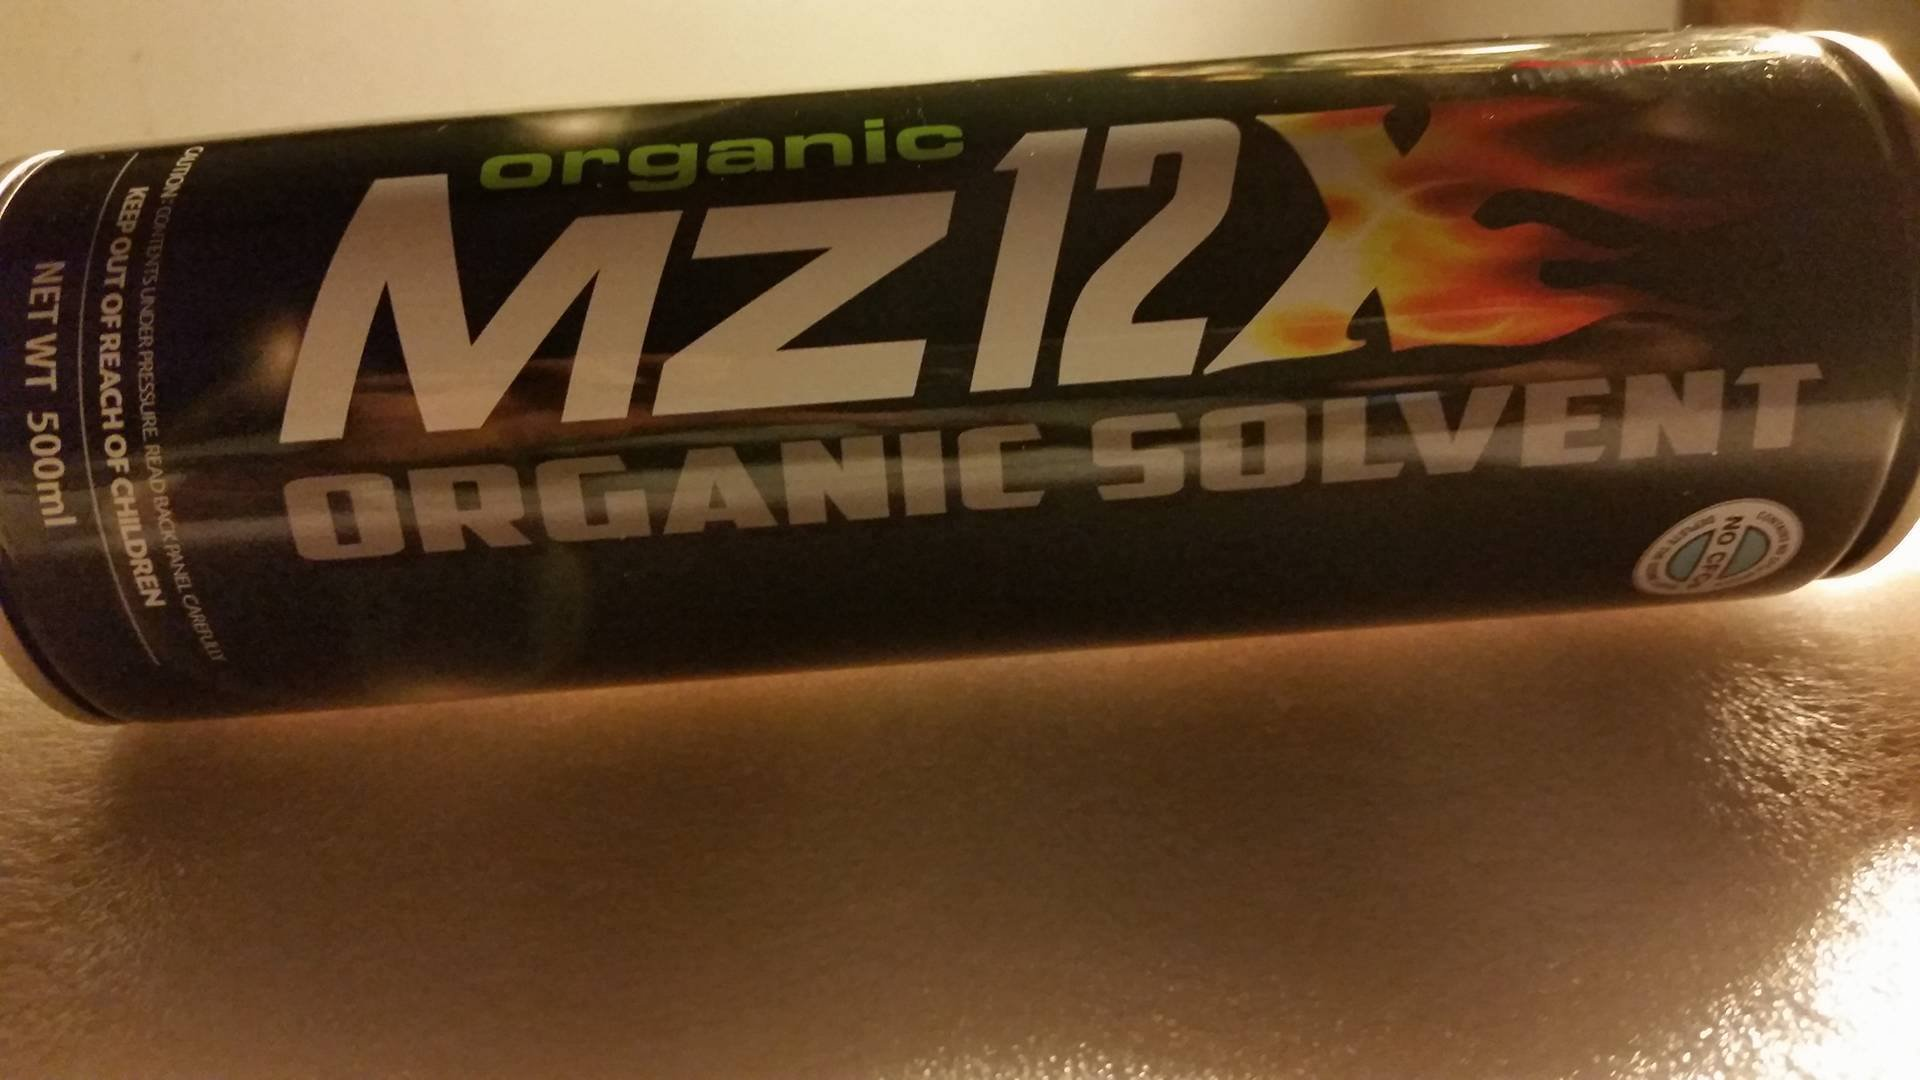 Organic Mz12X ORGANIC SOLVENT 6 Cans No CFCs